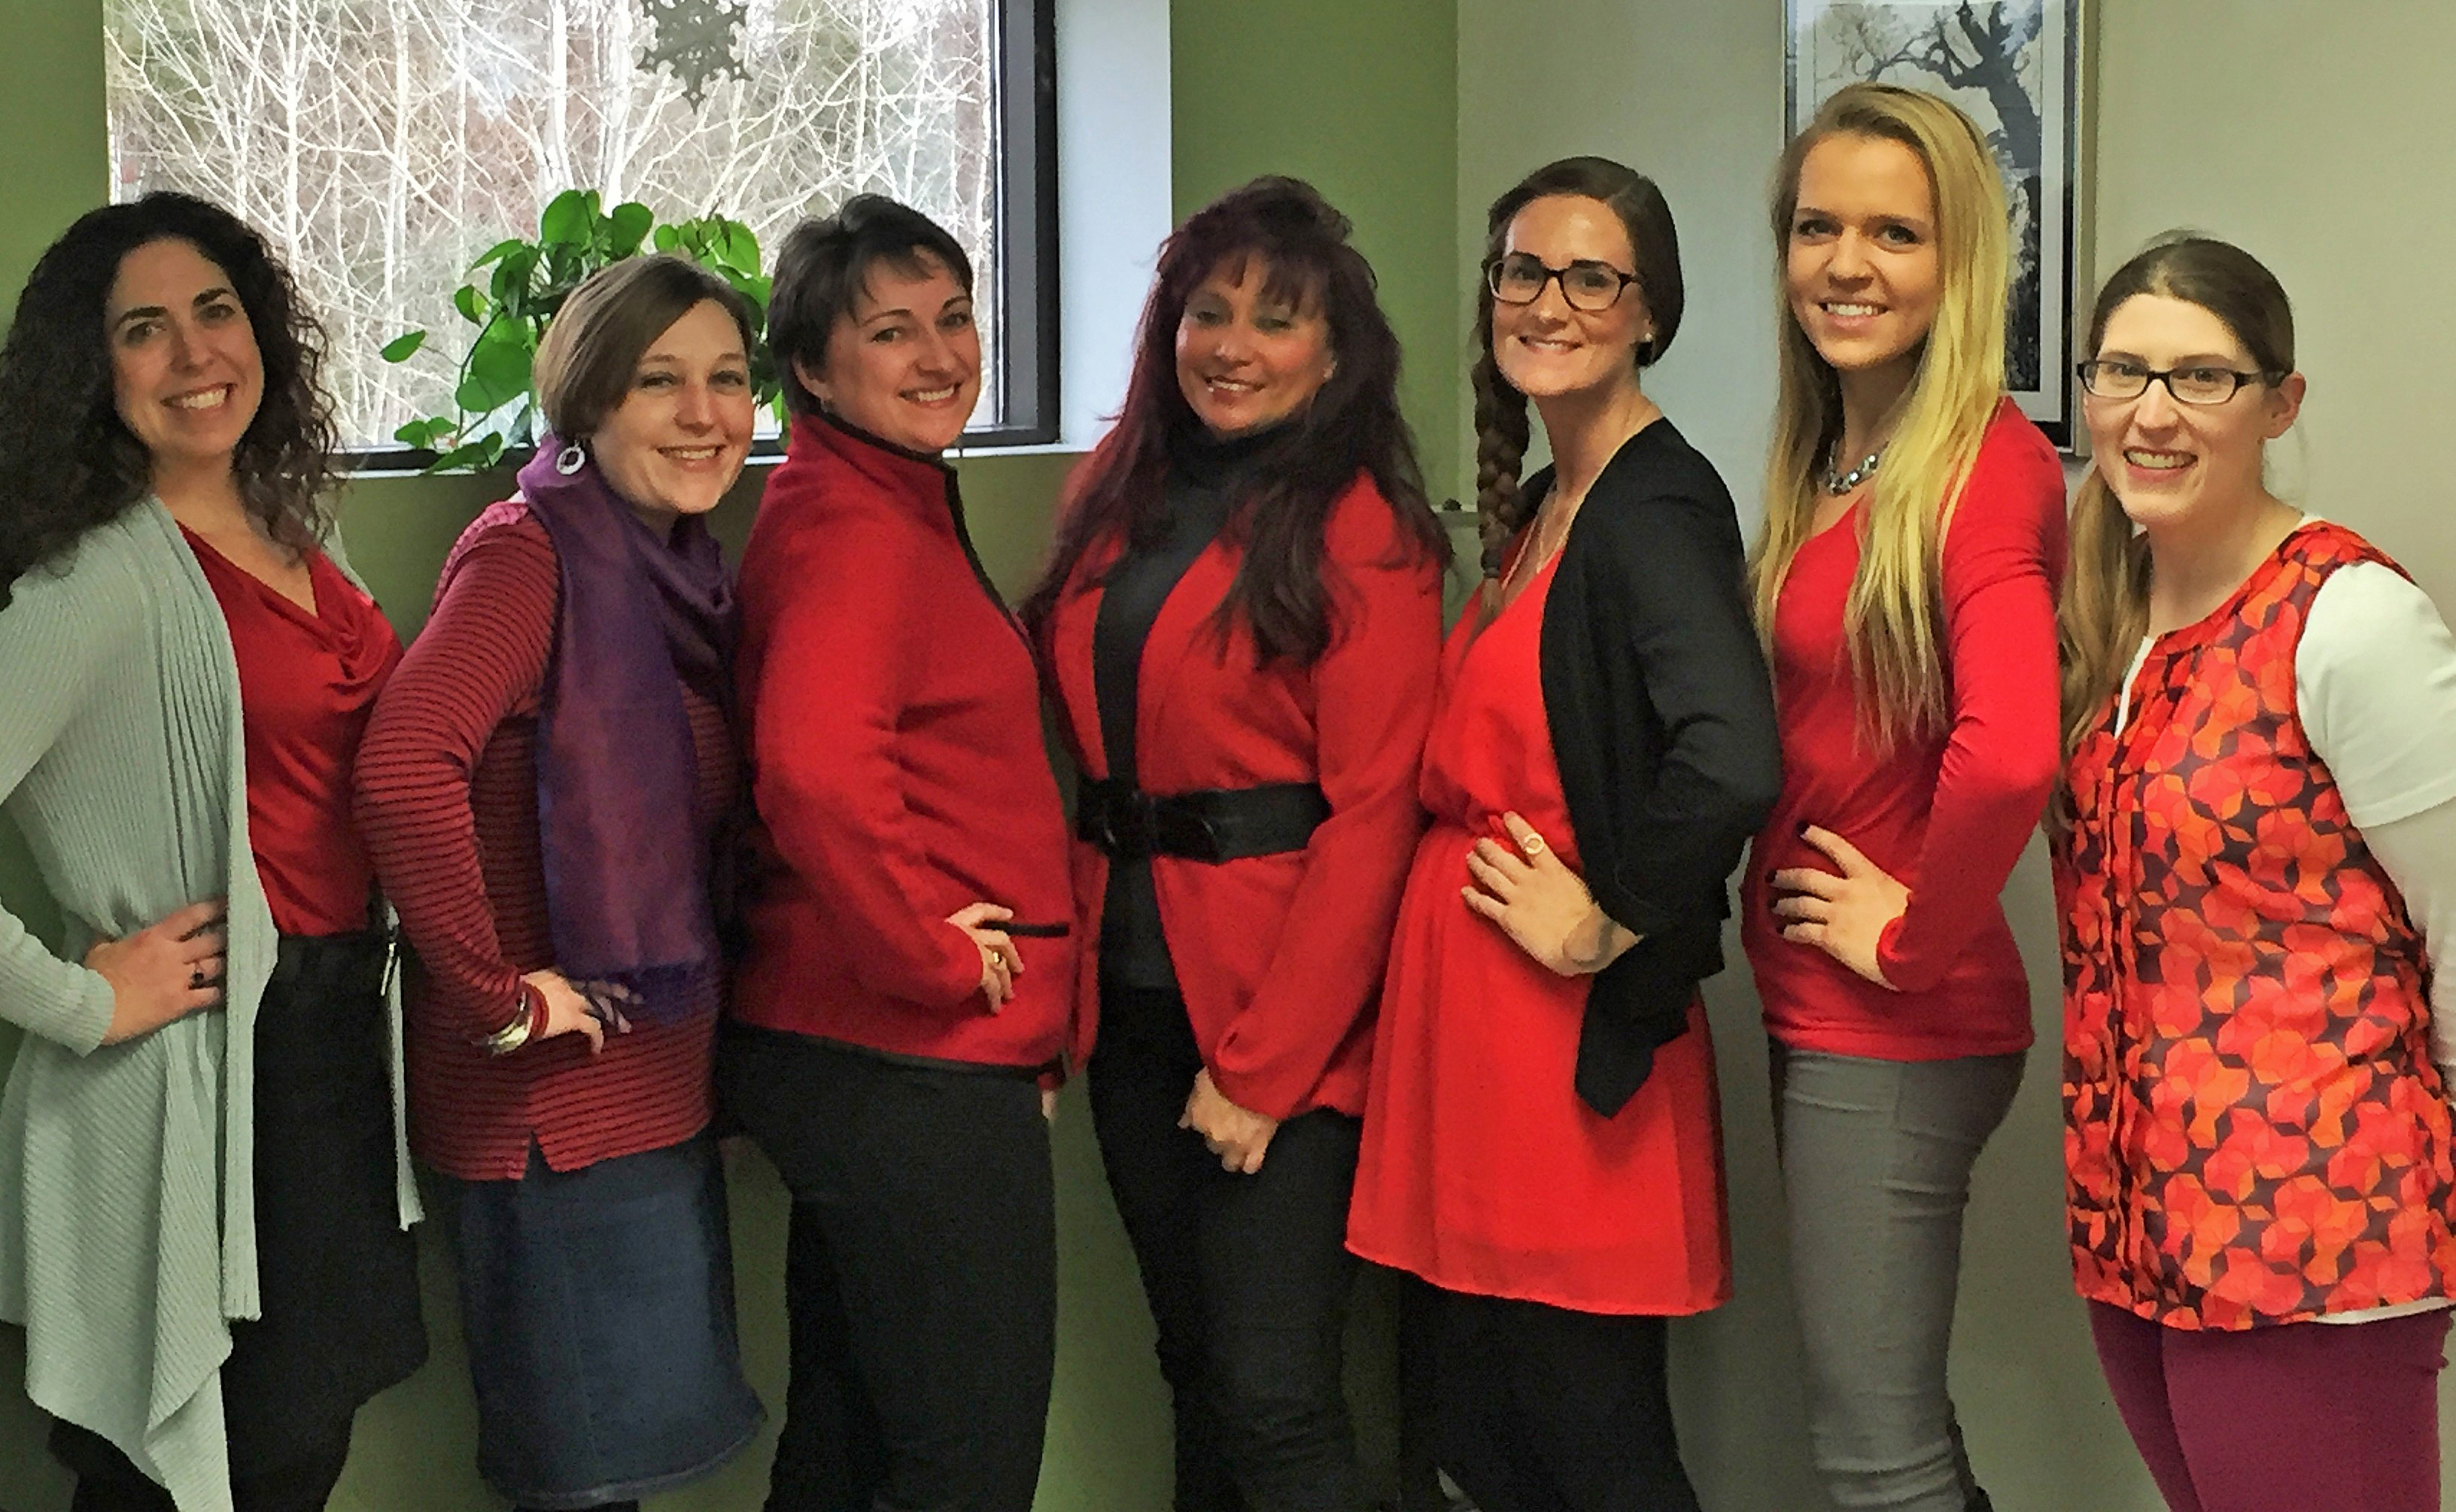 Some of the lovely ladies at ALPCO wore red to support National Wear Red Day.